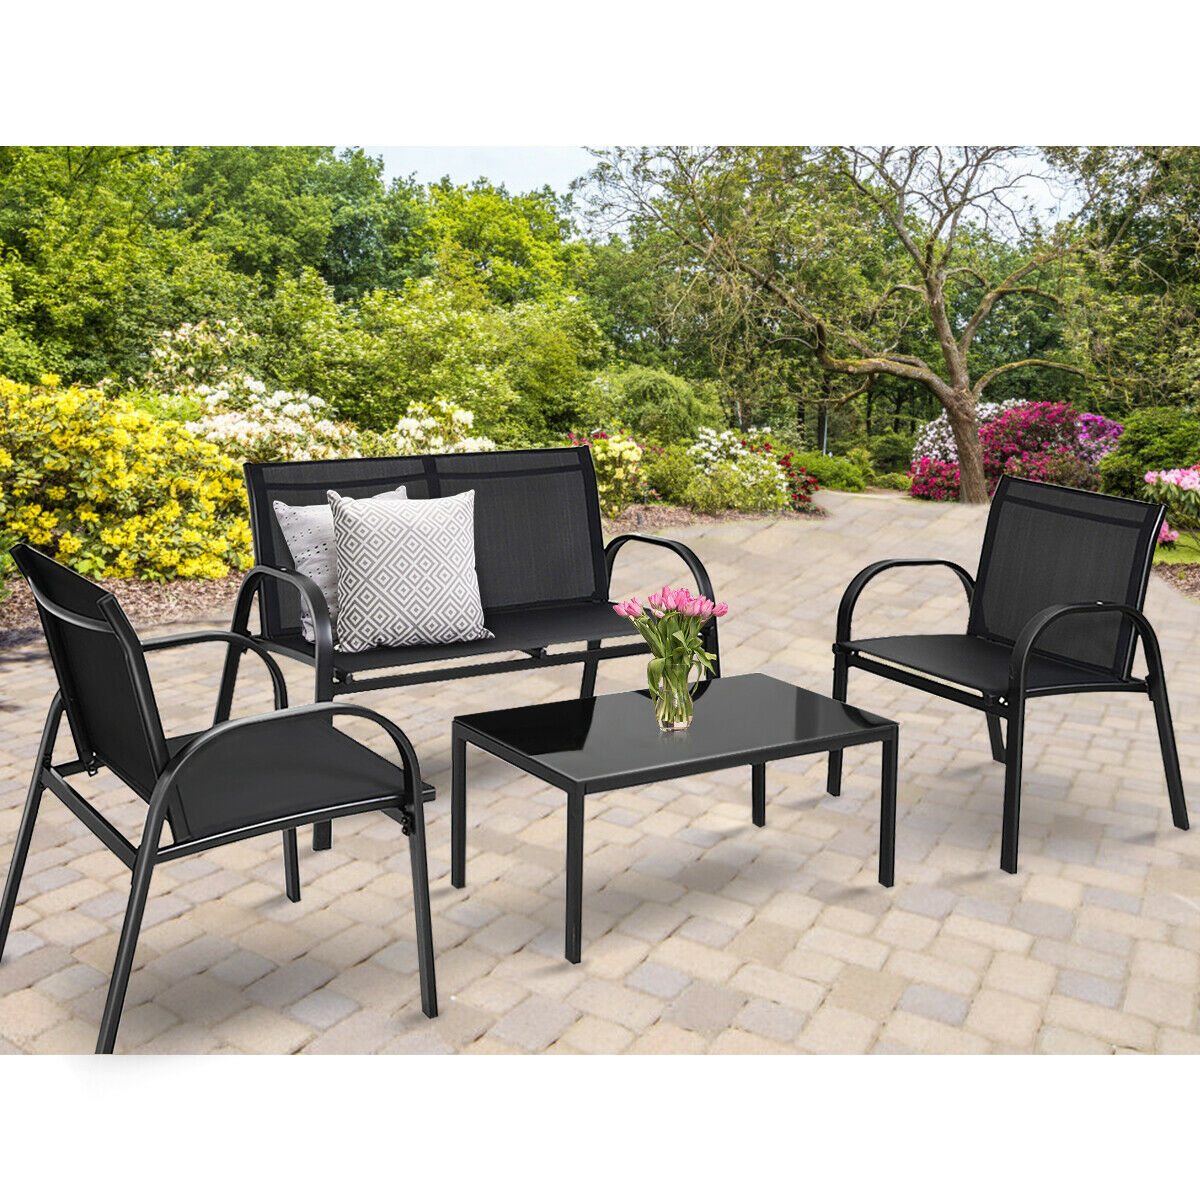 Patio Furniture Walmart inside sizing 1200 X 1200